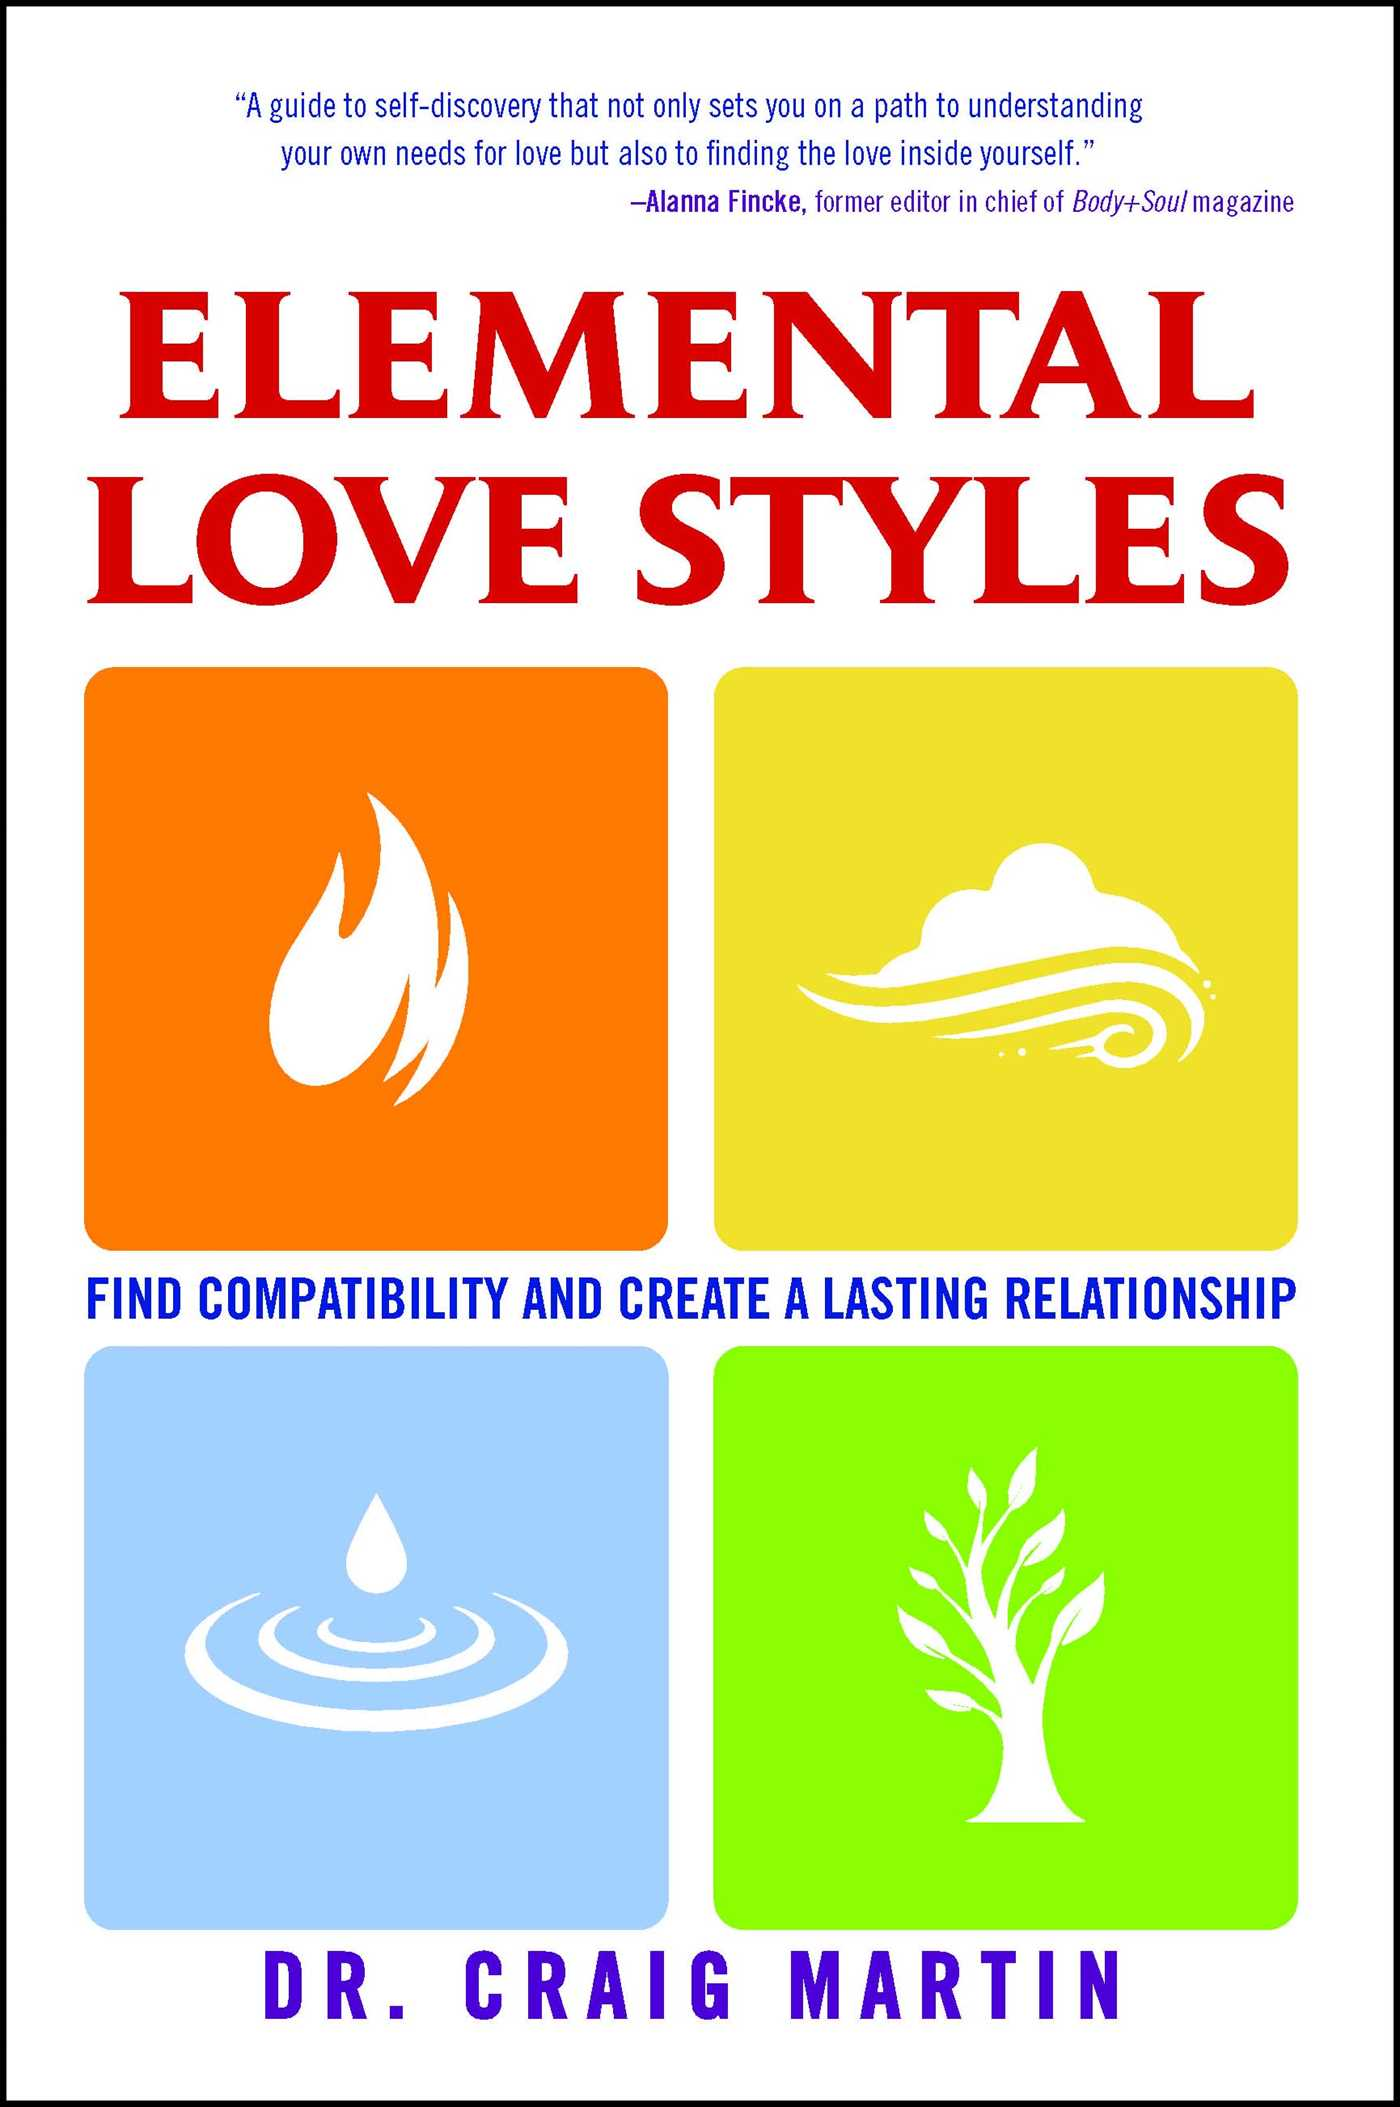 Elemental-love-styles-9781582702568_hr